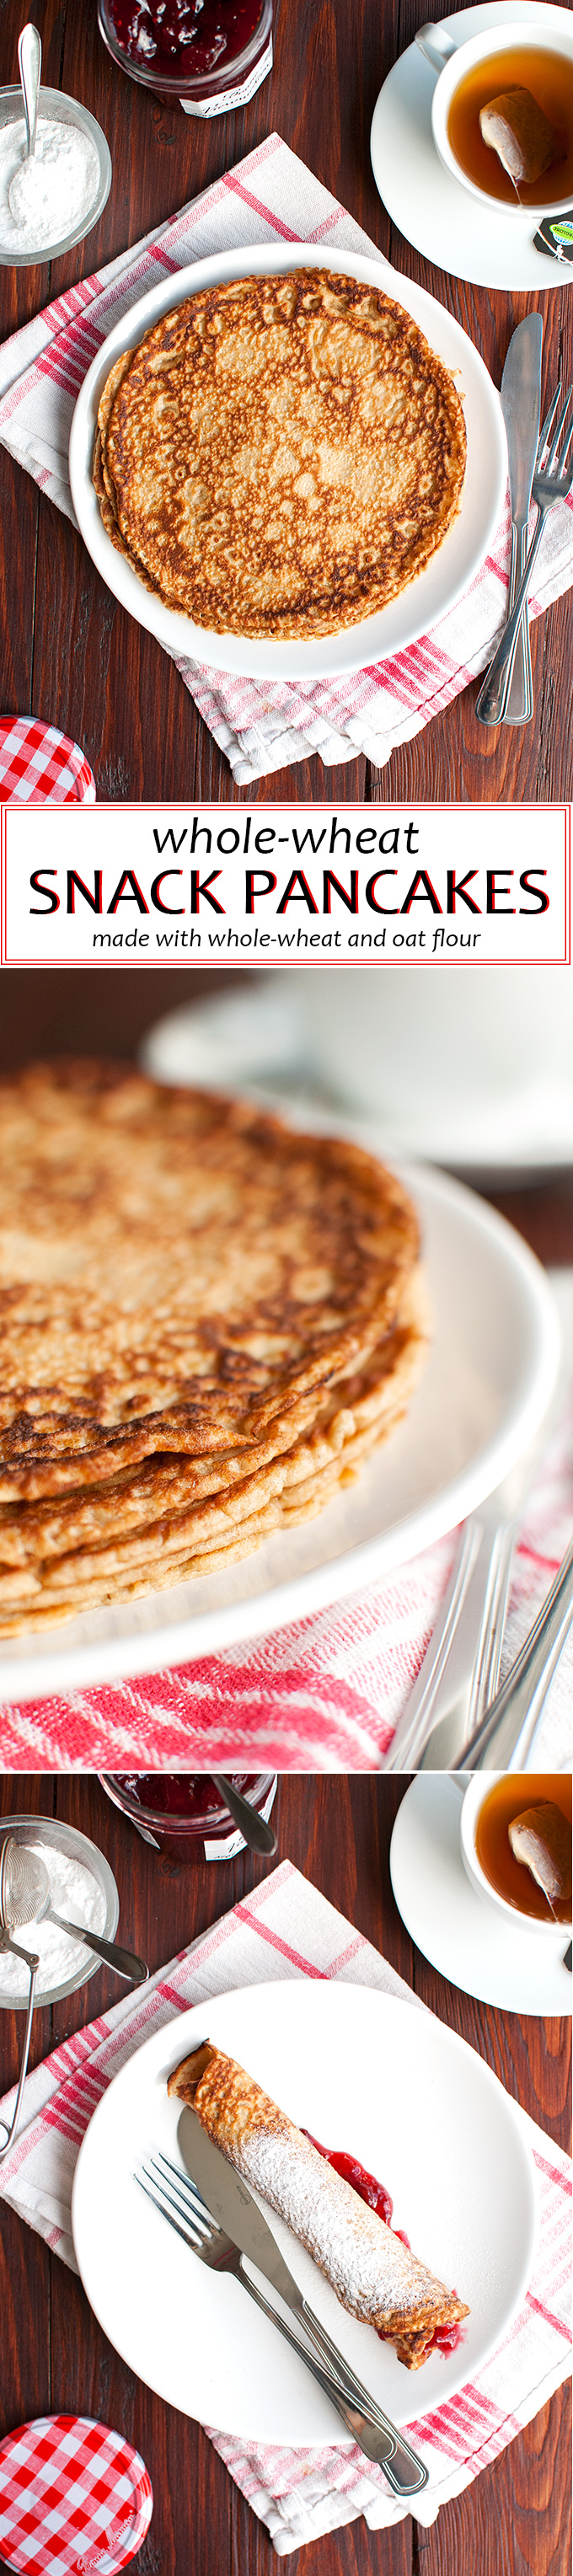 The Tough Cookie | Whole Wheat Pancakes with Oats and Cinnamon | thetoughcookie.com